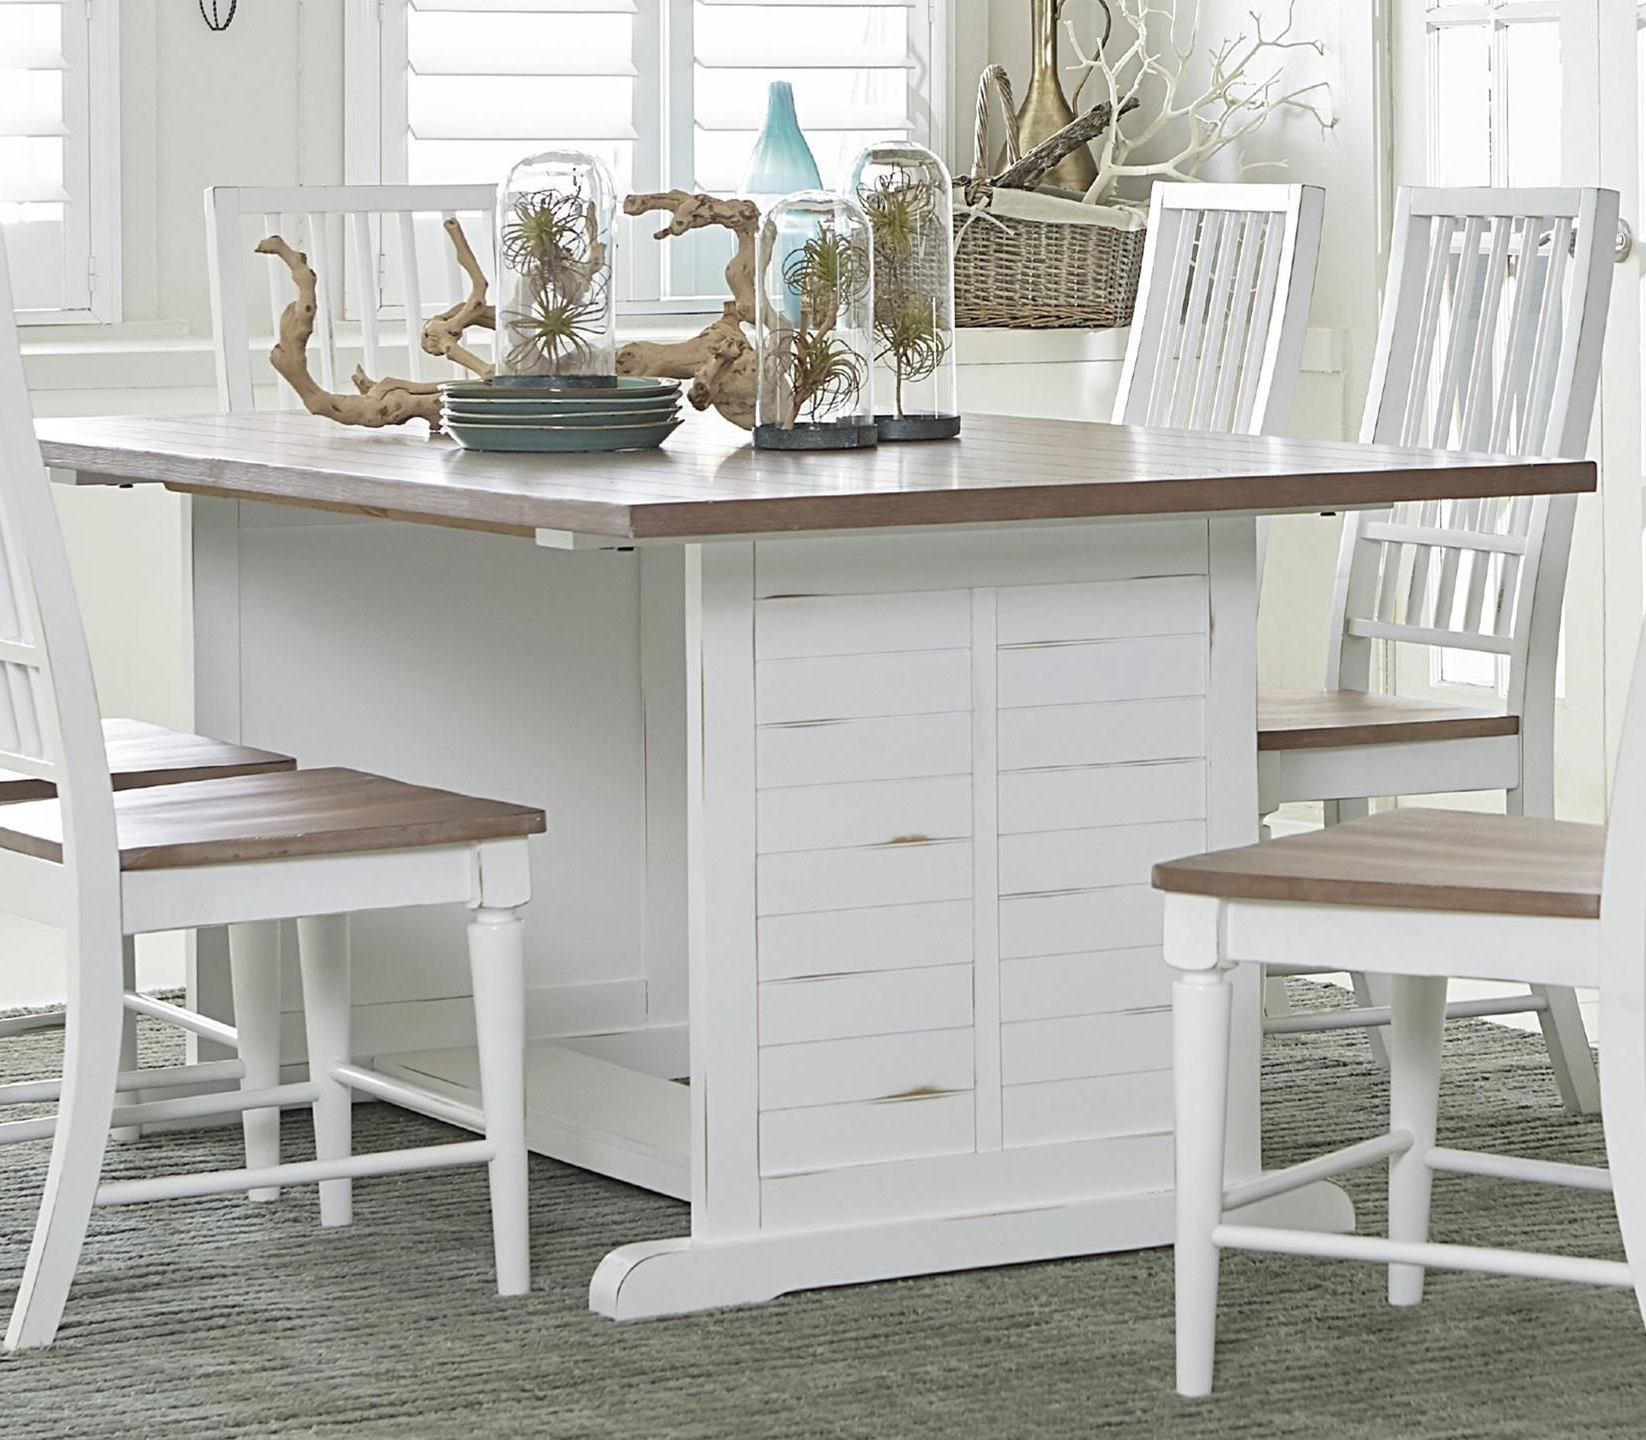 Most Recently Released Transitional Rectangular Dining Tables Inside Progressive Furniture Shutters Transitional Rectangular (View 19 of 30)